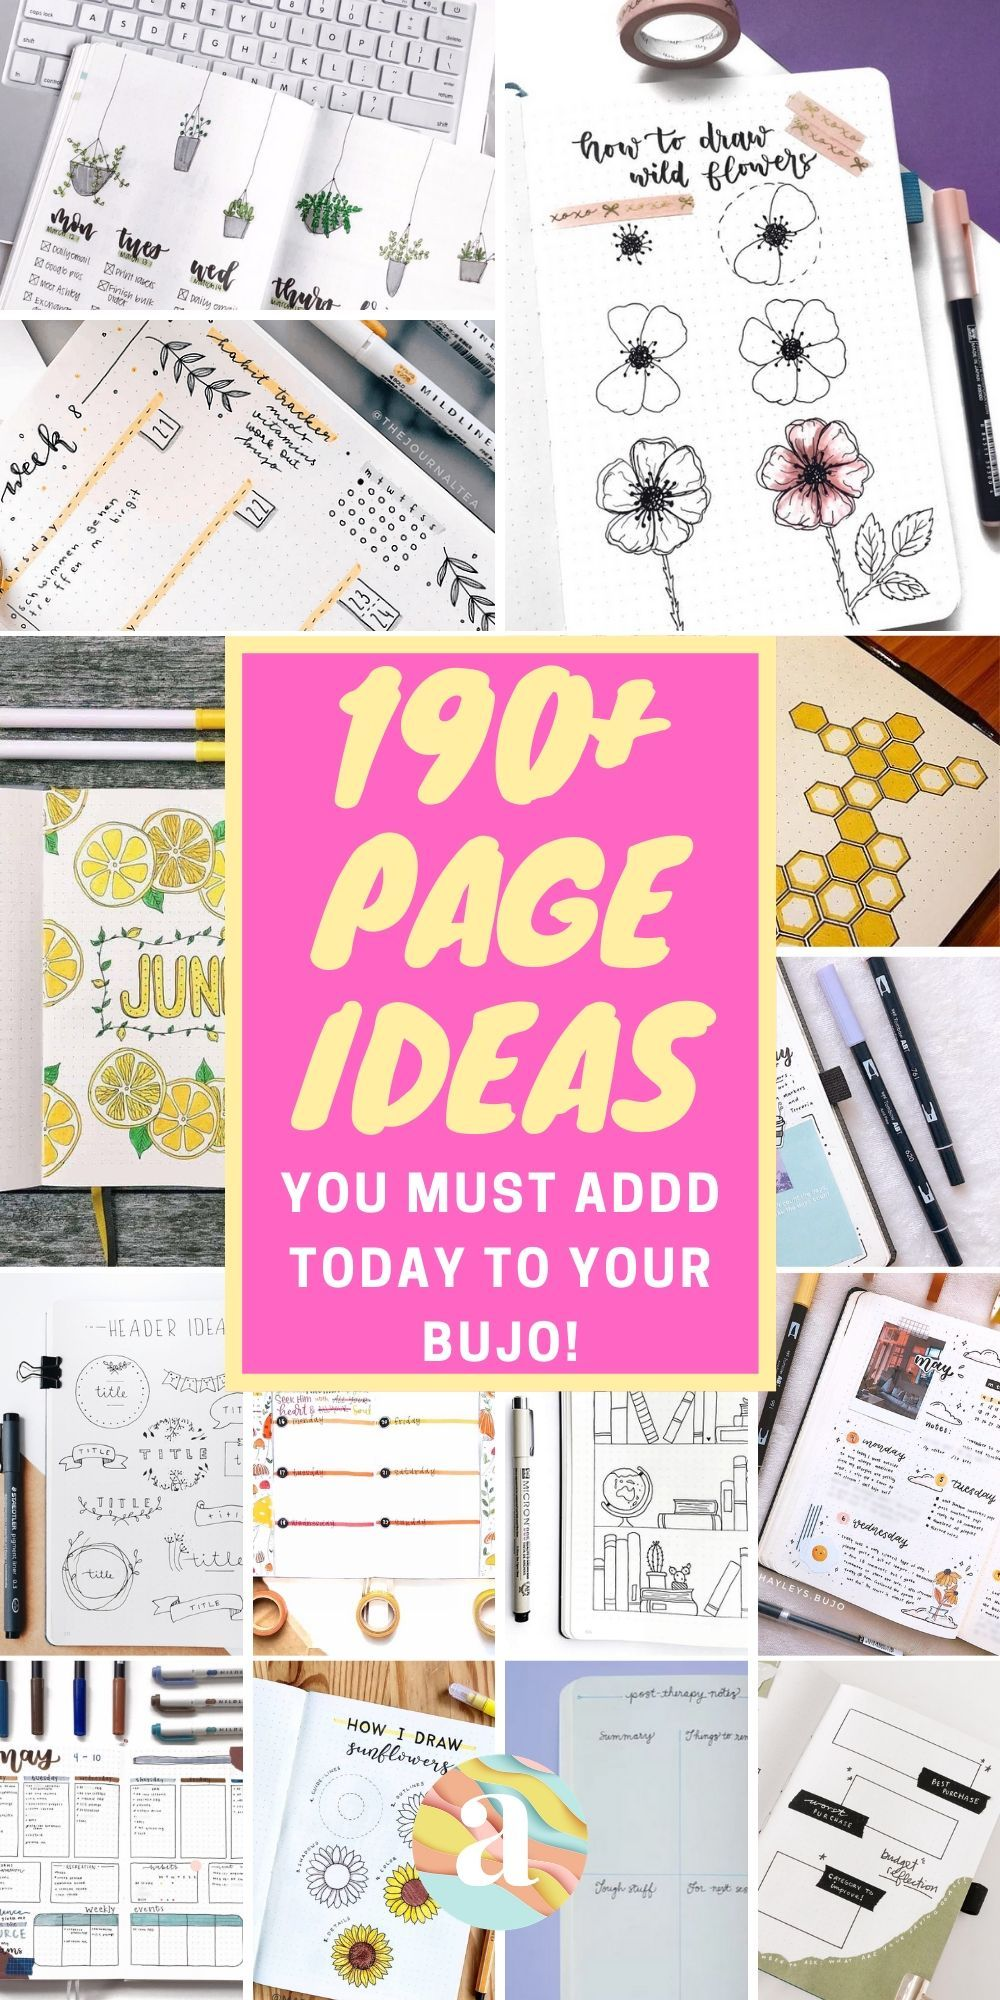 190+ Bullet Journal Page Ideas to Organize Your Life!